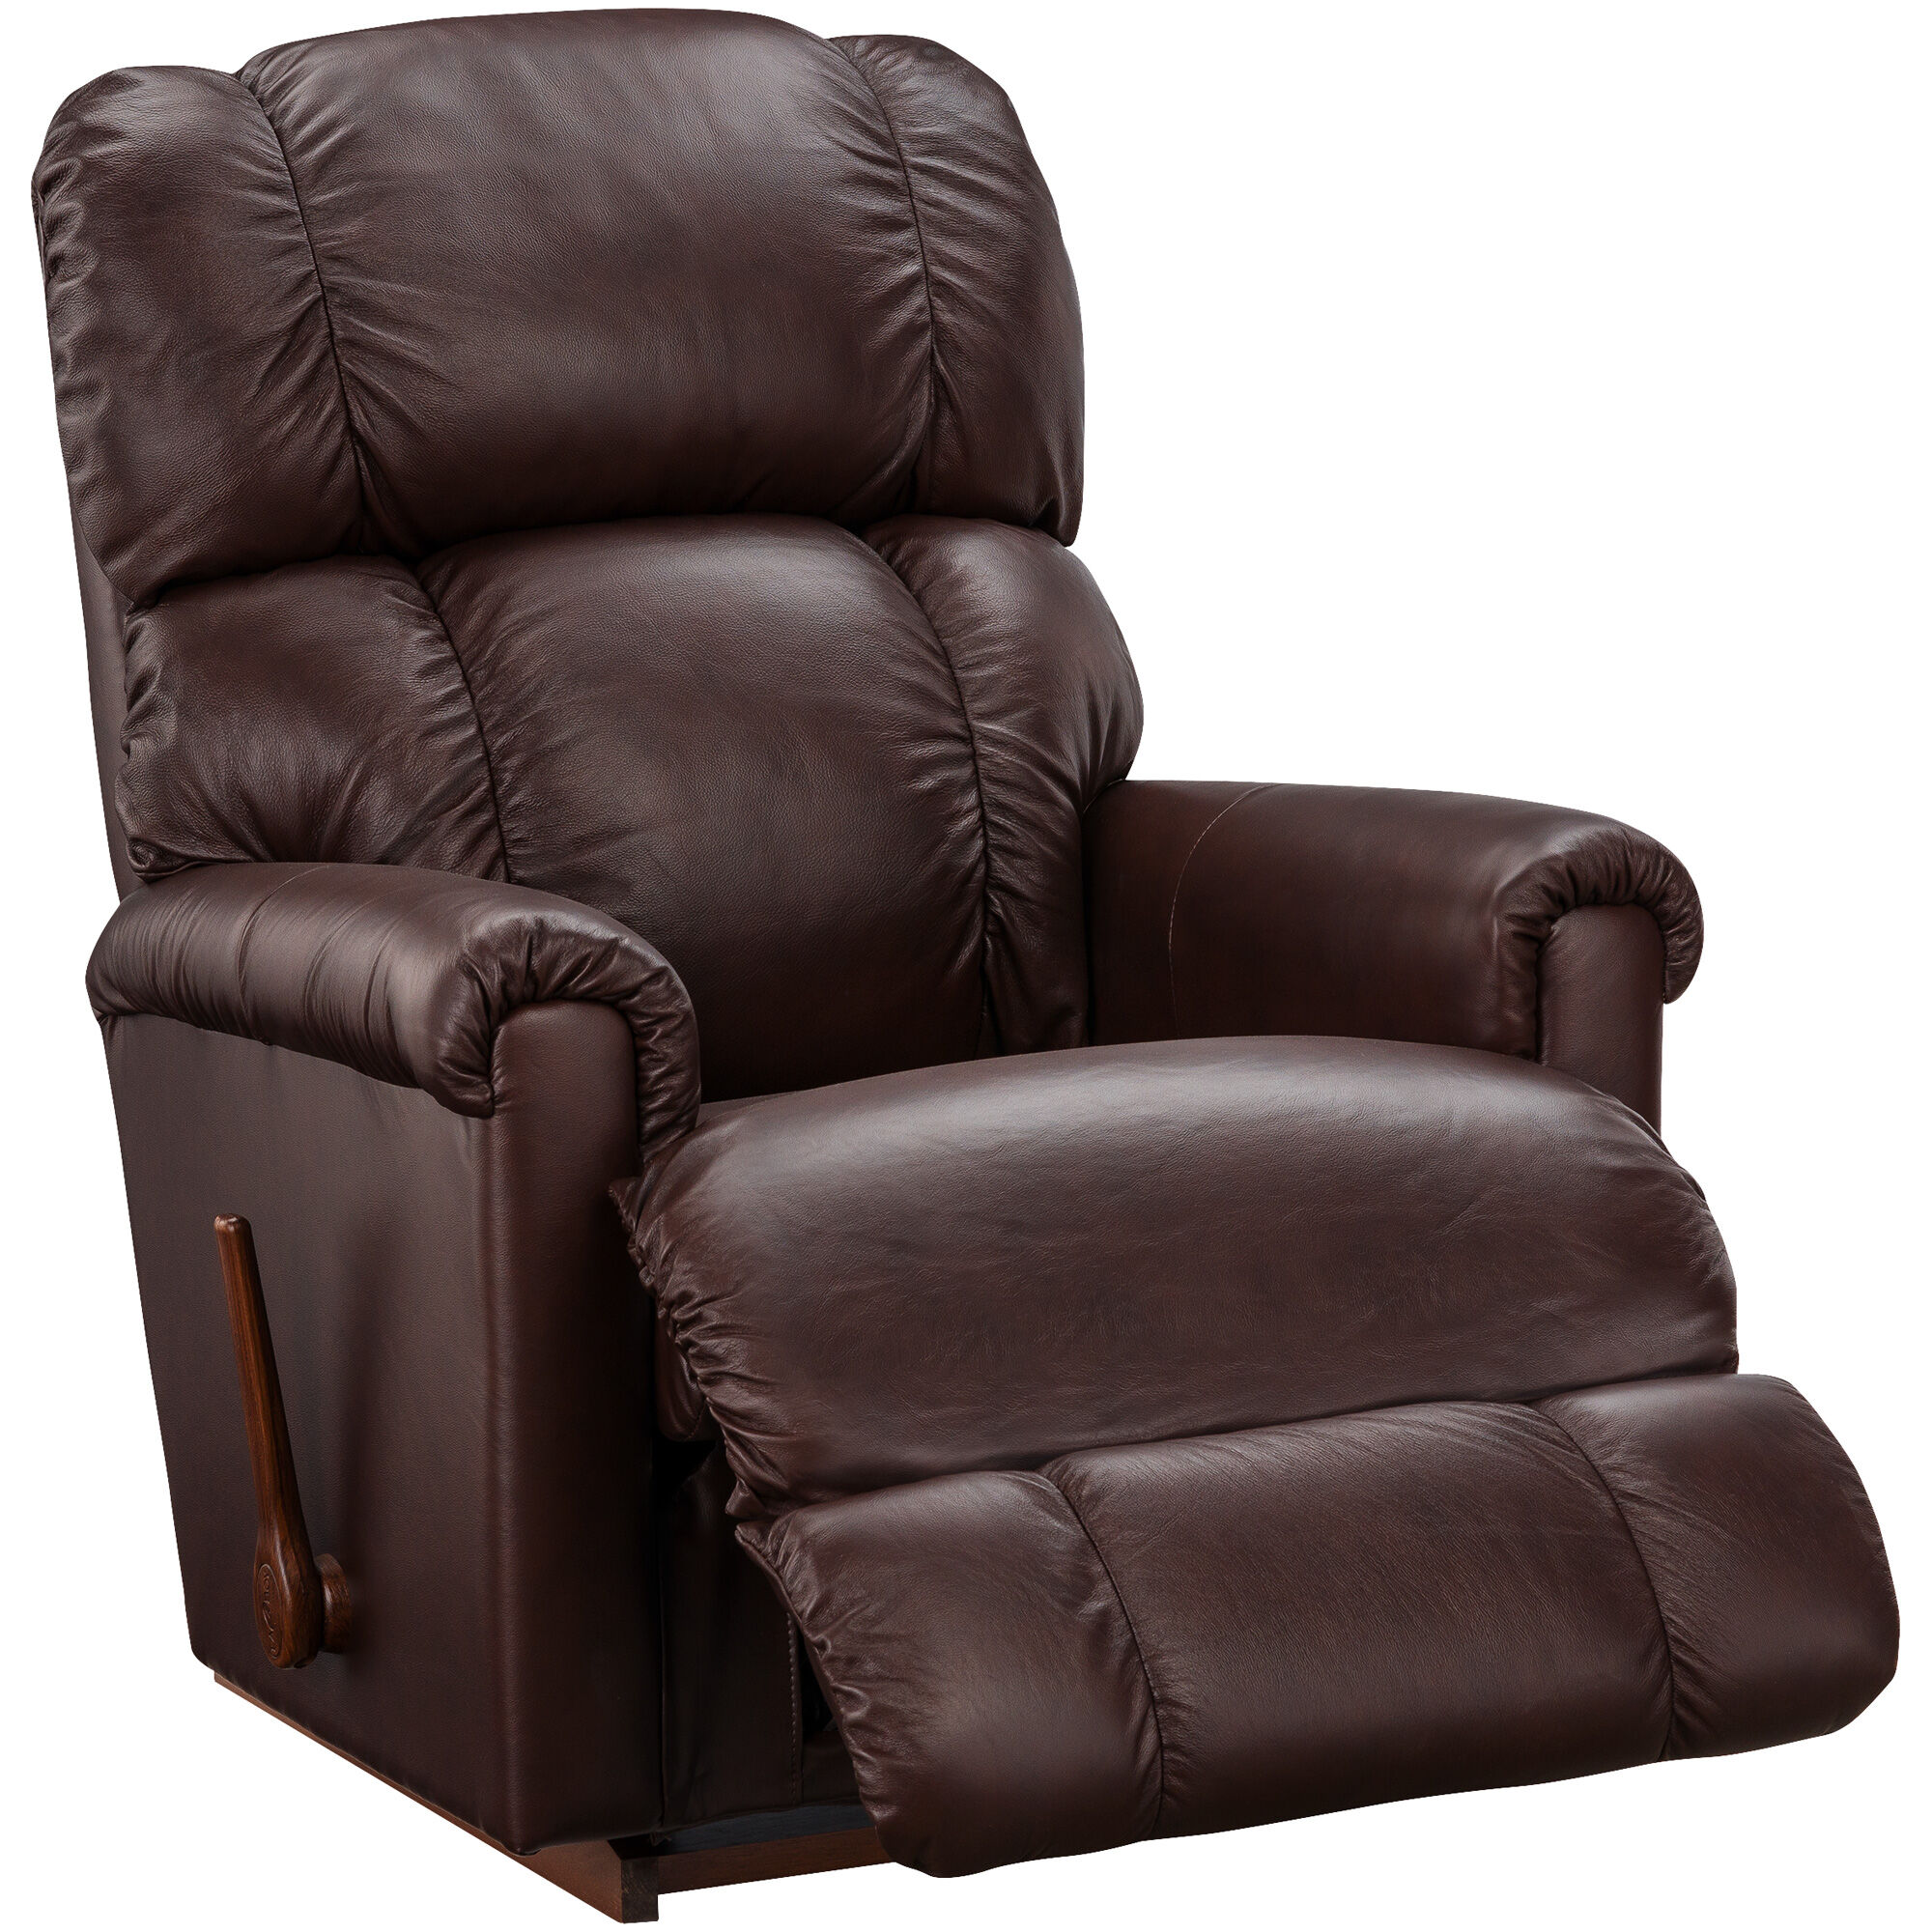 Slumberland Furniture Pinnacle Espresso Rocker Recliner